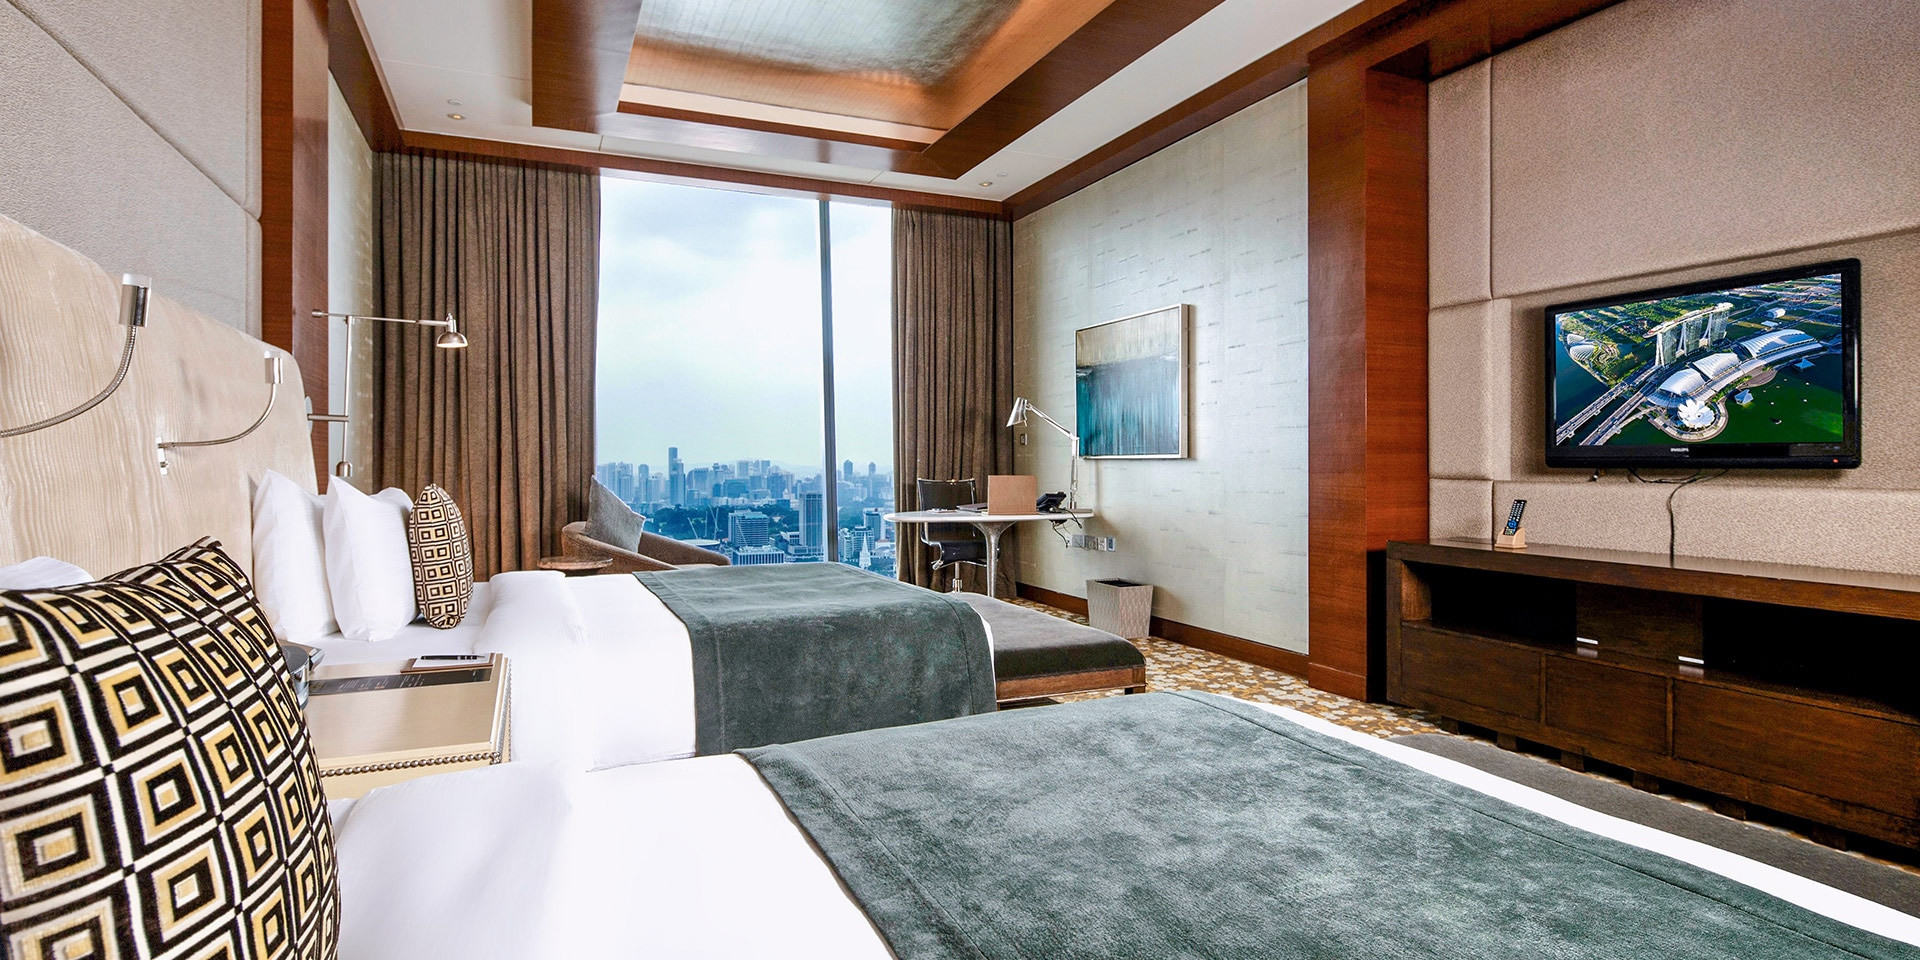 Straits Suite with City View from Living Room, Marina Bay Sands